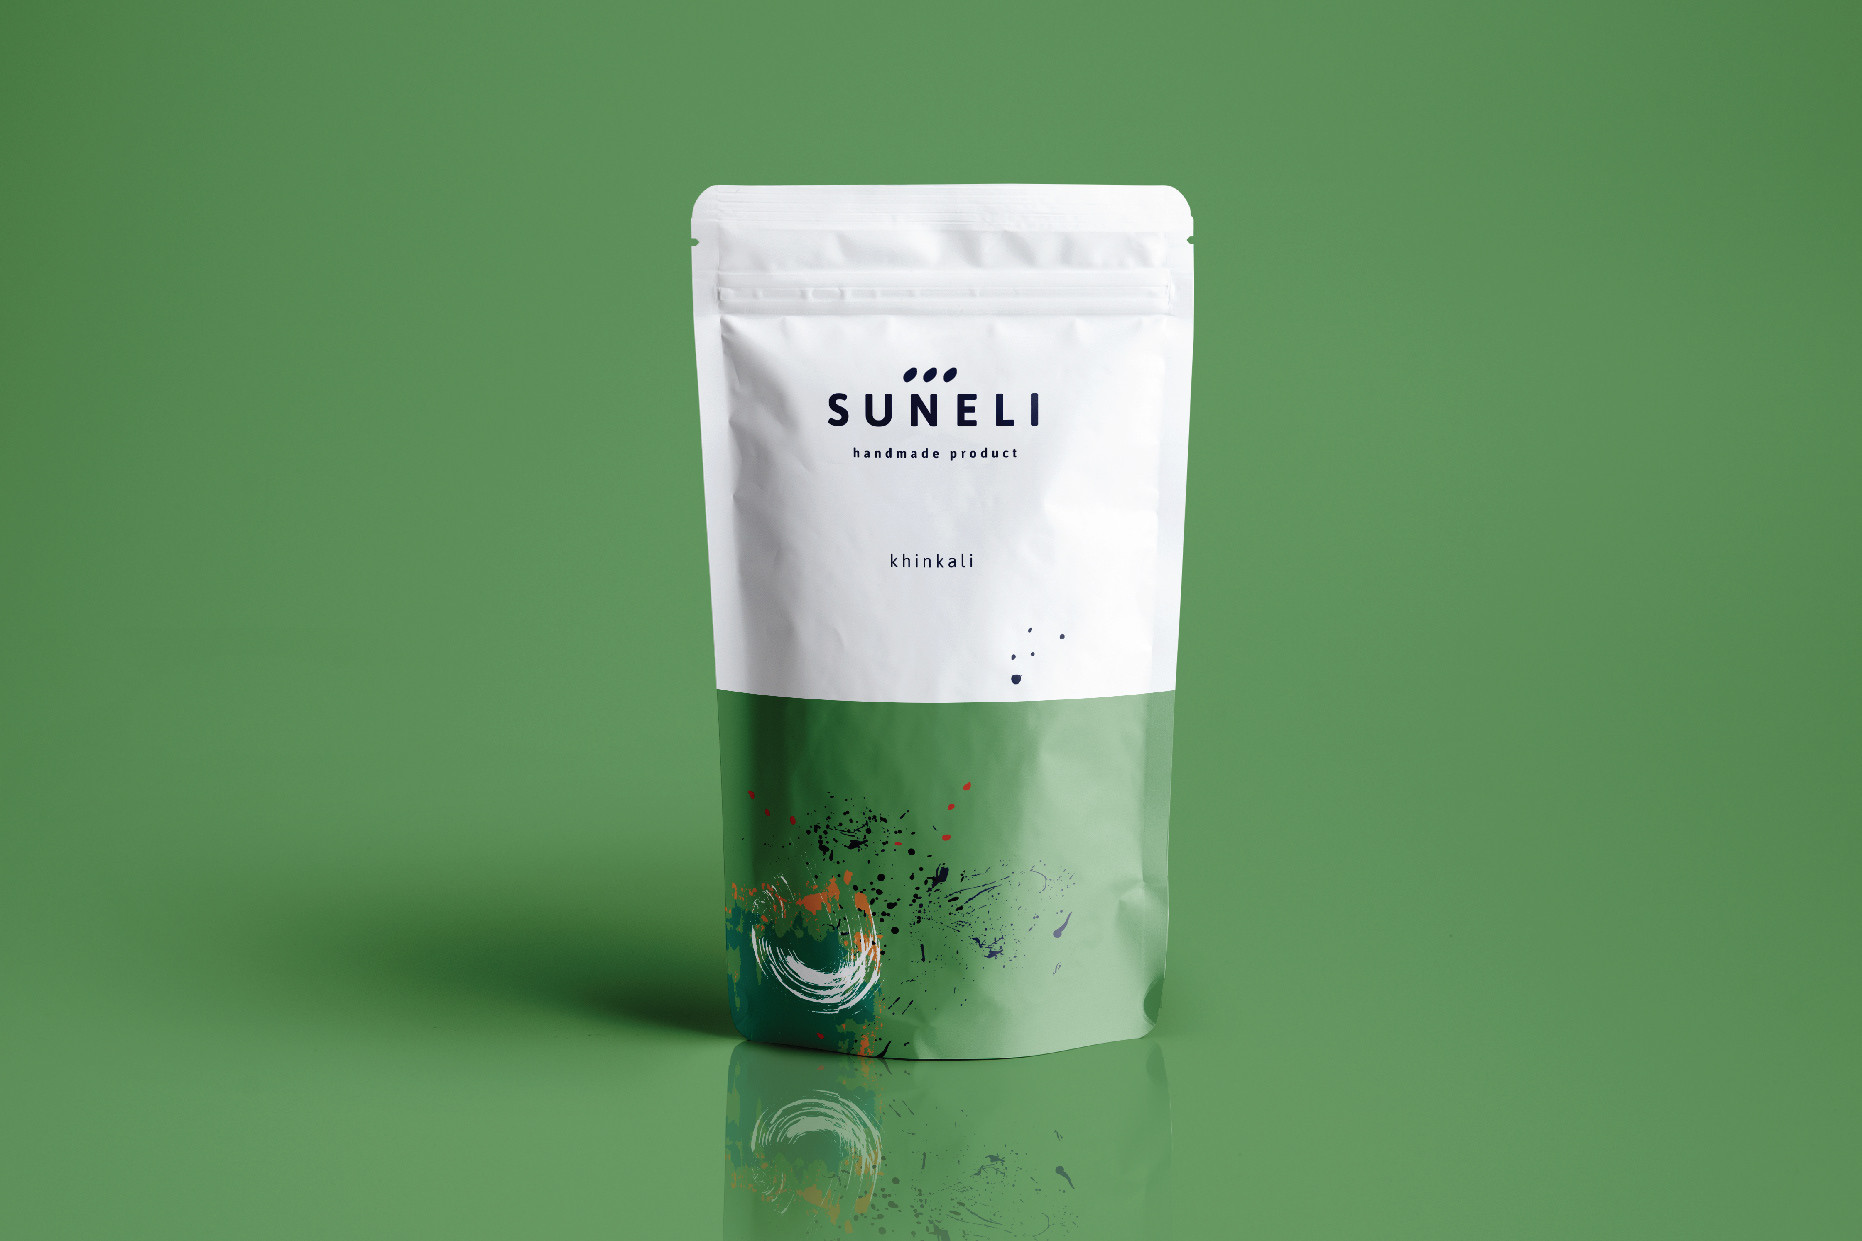 Suneli - Product packaging